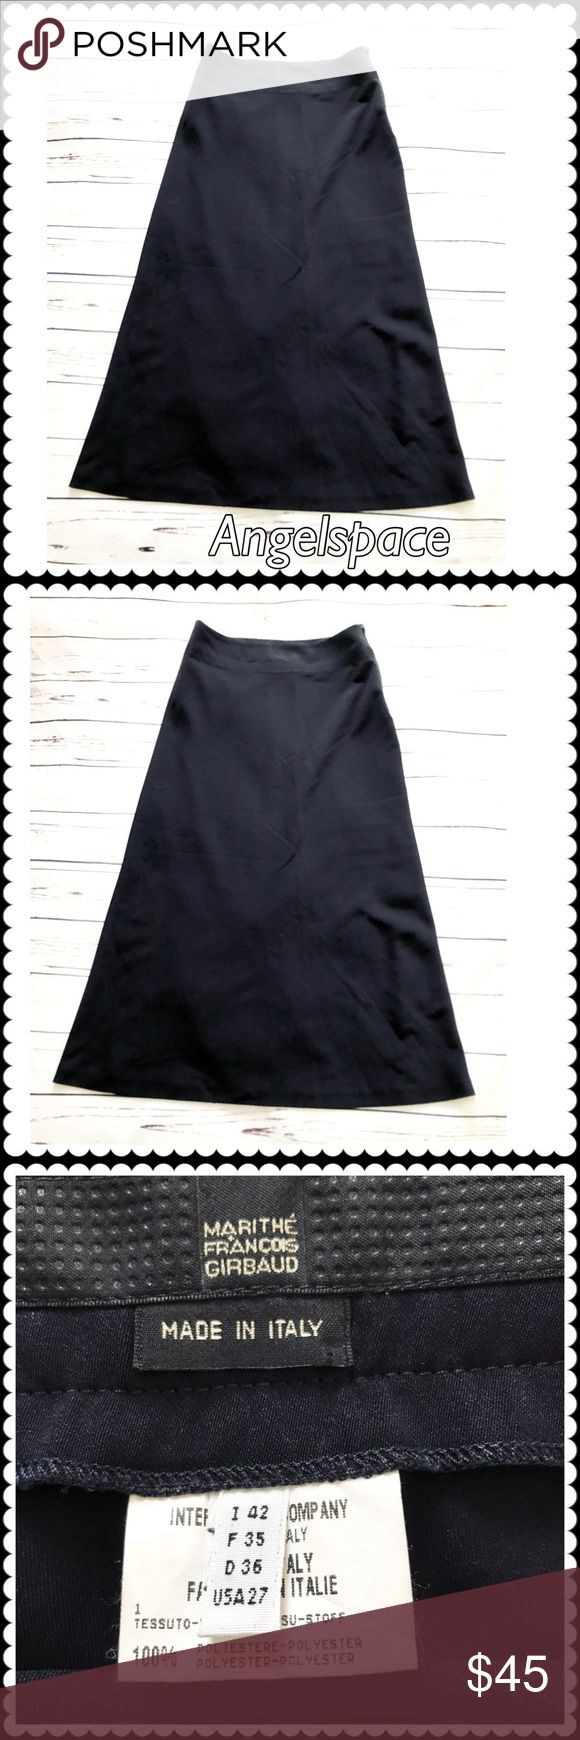 Vintage Marithe Francois Girbaud Navy long skirt. Marithe Francois Girbaud vintage Navy long skirt. From 90's when the brand was really hot. Size Italian 42. US 27. Worn and stored.  No flaw. Please see the last photos for measurements. Marithe Francois Girbaud Skirts